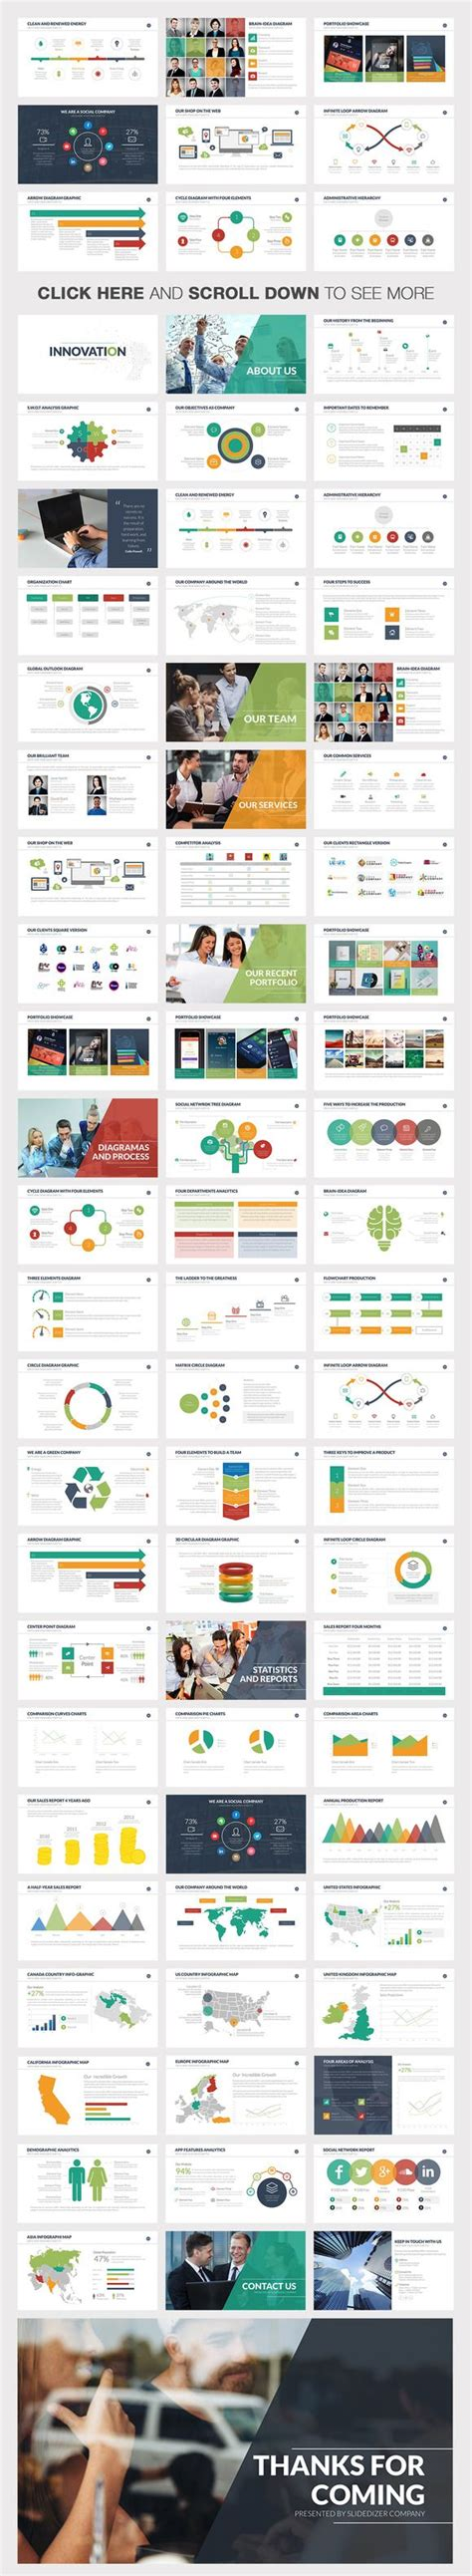 517303 Creative And Good Looking Powerpoint Slides Best Looking Powerpoint